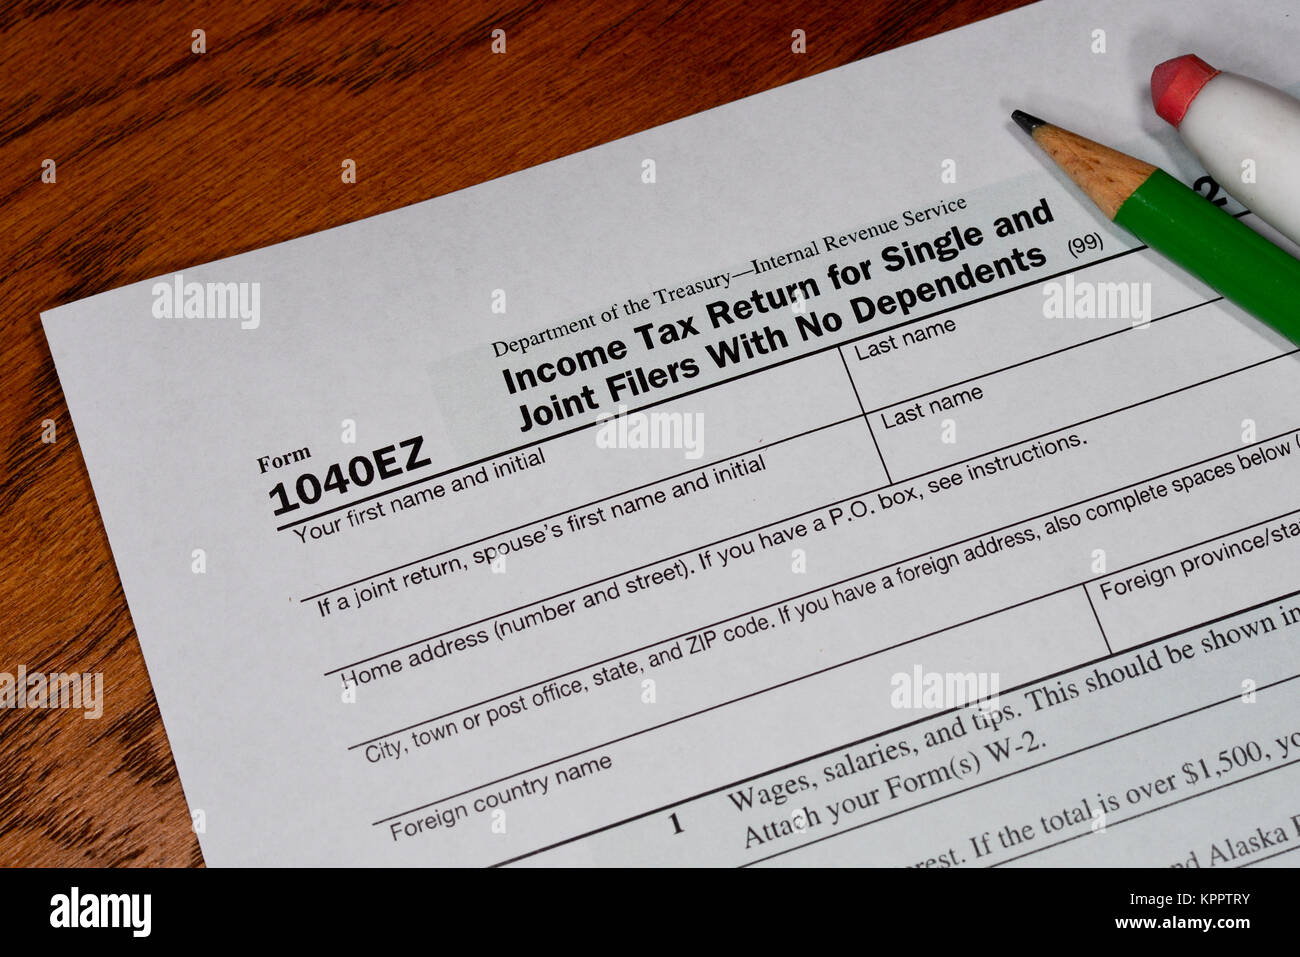 Simple version of the US income tax form for individuals - Form 1040EZ - with a pencil and an eraser on a wooden - Stock Image